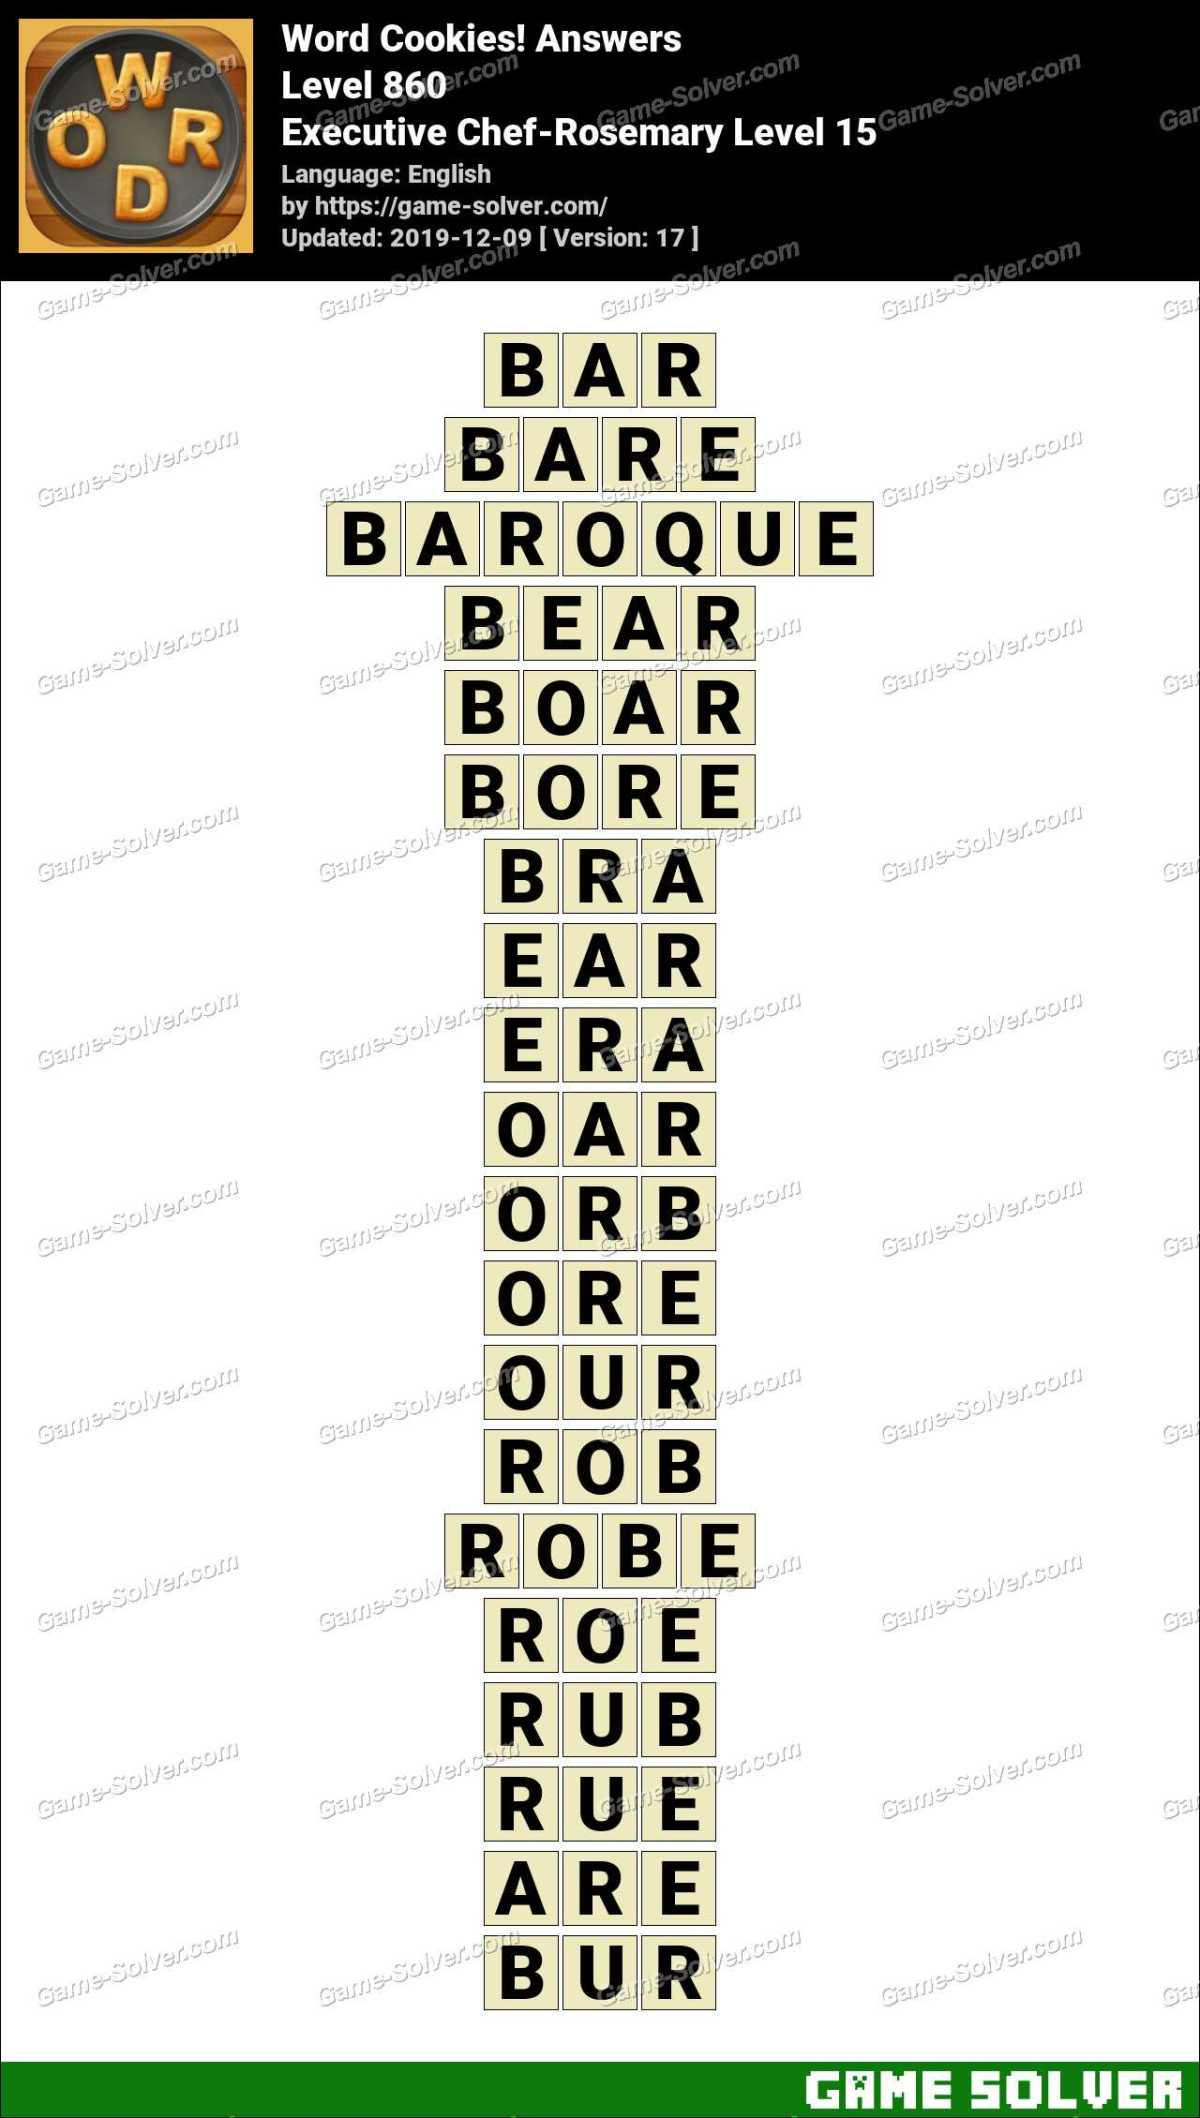 Word Cookies Executive Chef-Rosemary Level 15 Answers